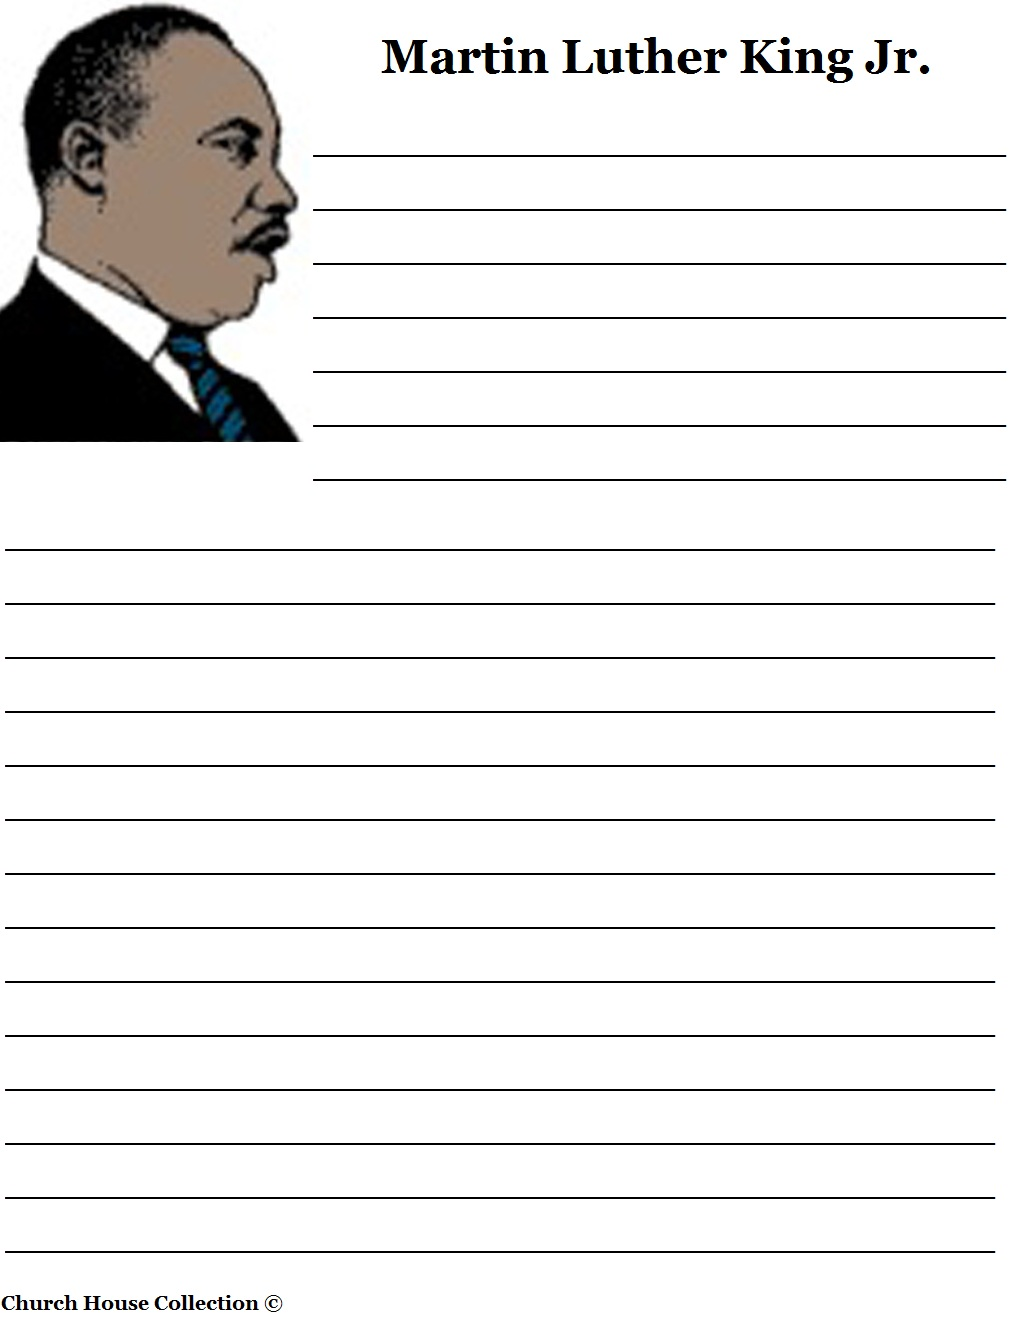 research paper about martin luther king jr This sample martin luther king jr research paper is published for educational and informational purposes only free research read more here.